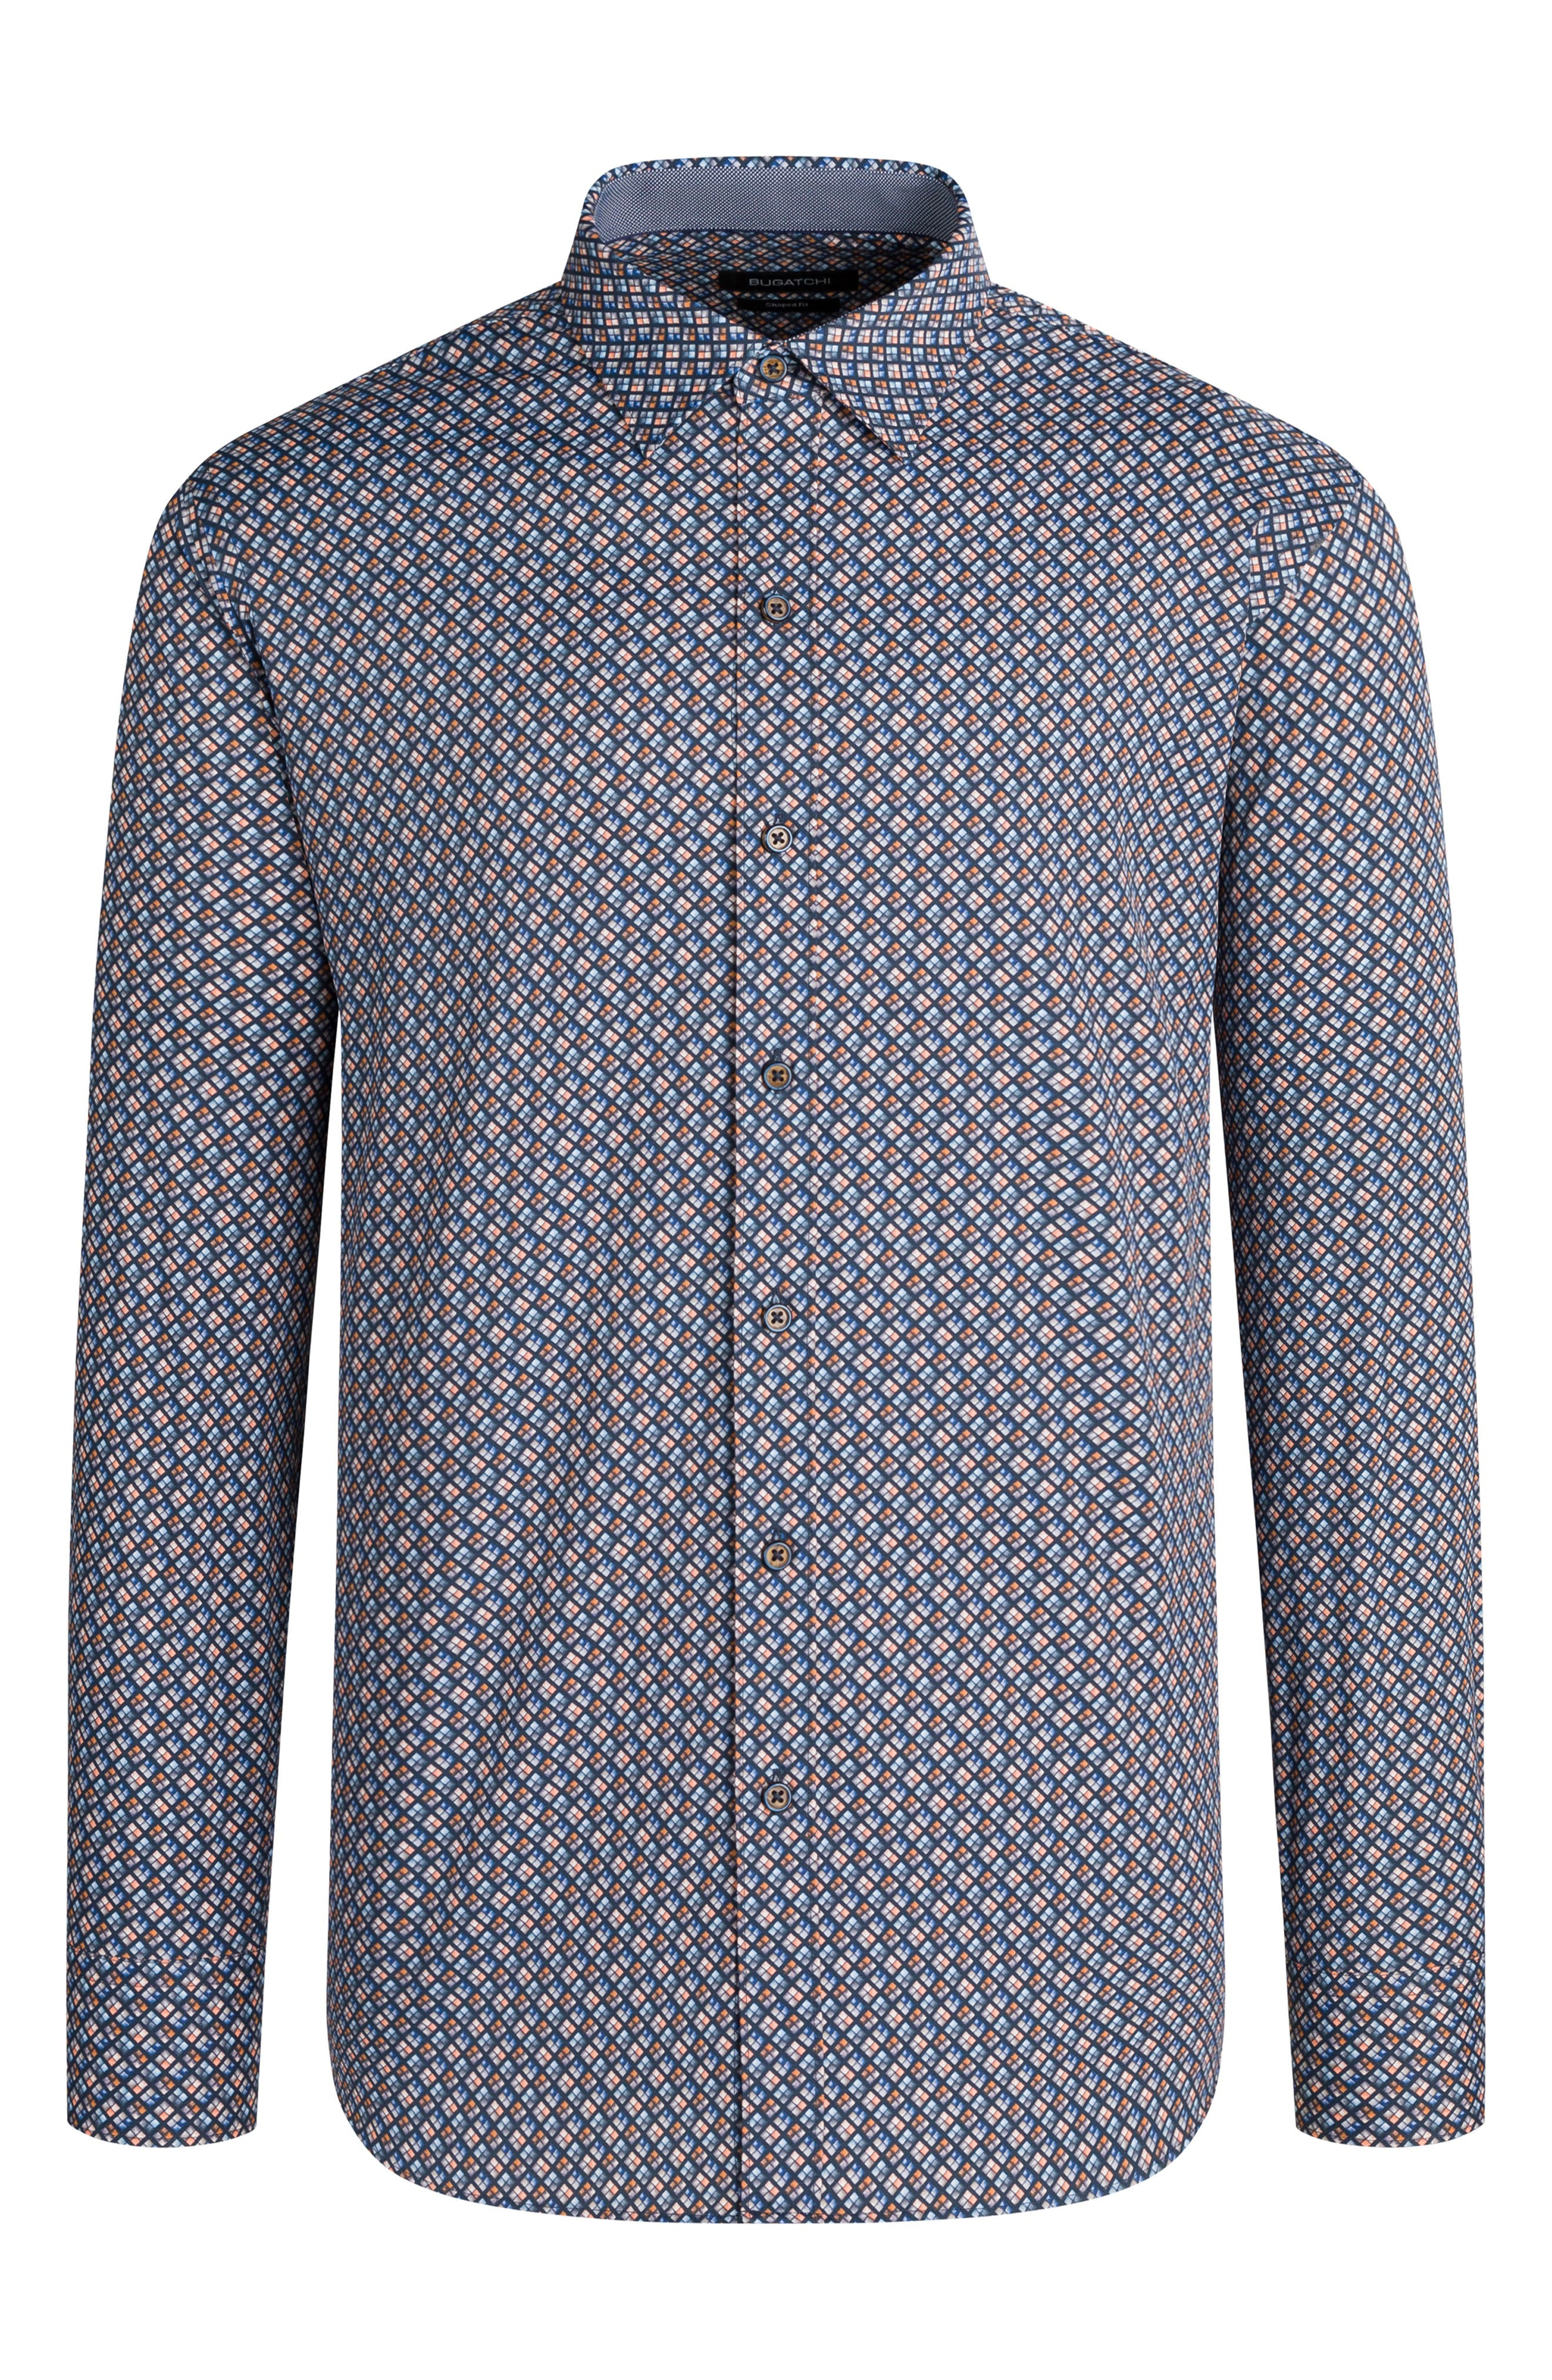 Woven from breathable, moisture-wicking fabric with flexible stretch, this long-sleeve shirt has rich geometric colors and a comfortable, classic fit. Style Name: Bugatchi Classic Fit Geometric Performance Button-Up Shirt. Style Number: 6152046. Available in stores.